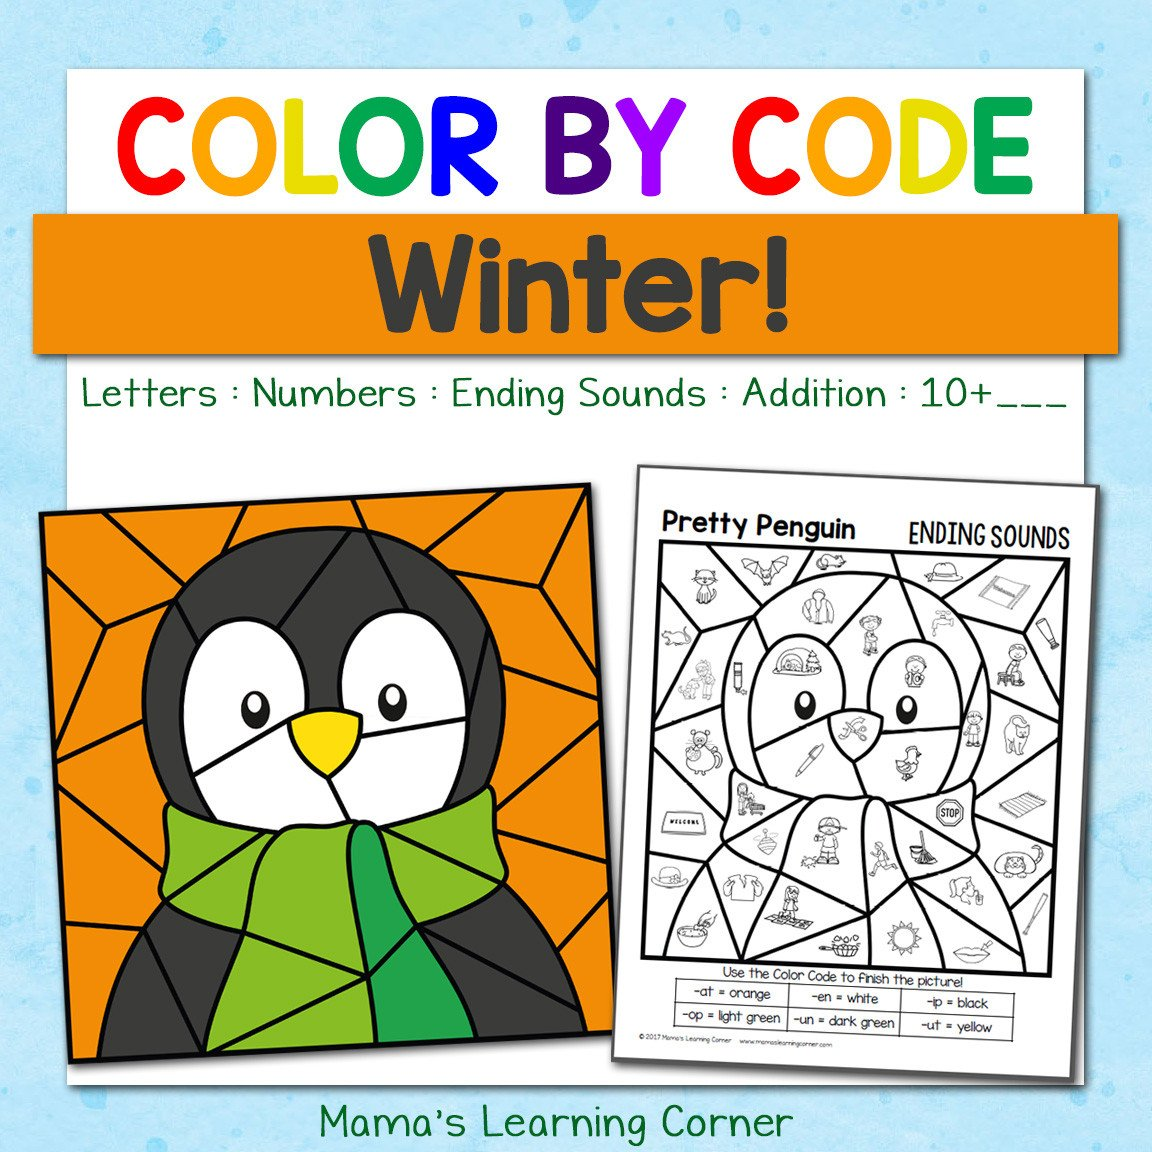 Winter Color by Number Worksheets Winter Color by Code Worksheets